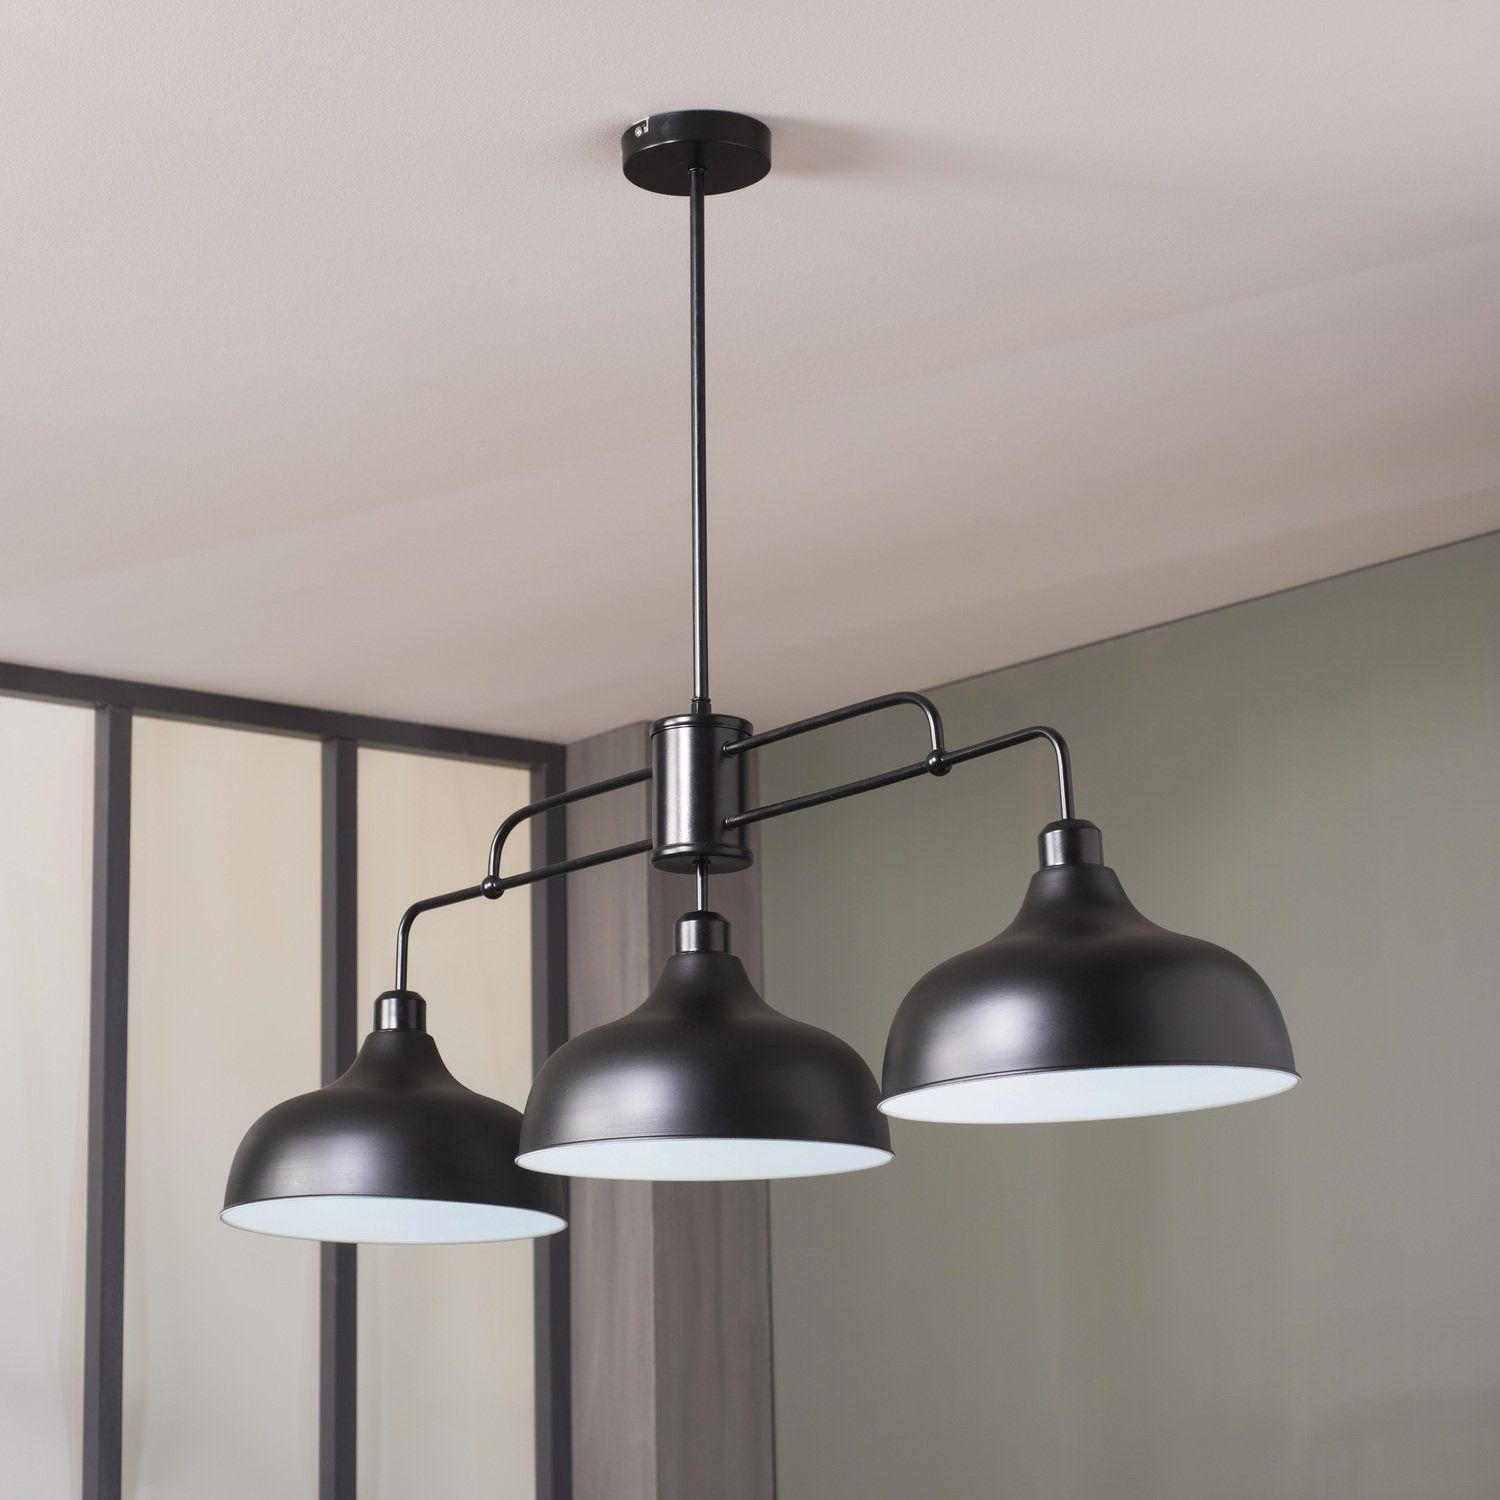 Cette suspension design adopte un style r solument for Lustre suspendu design